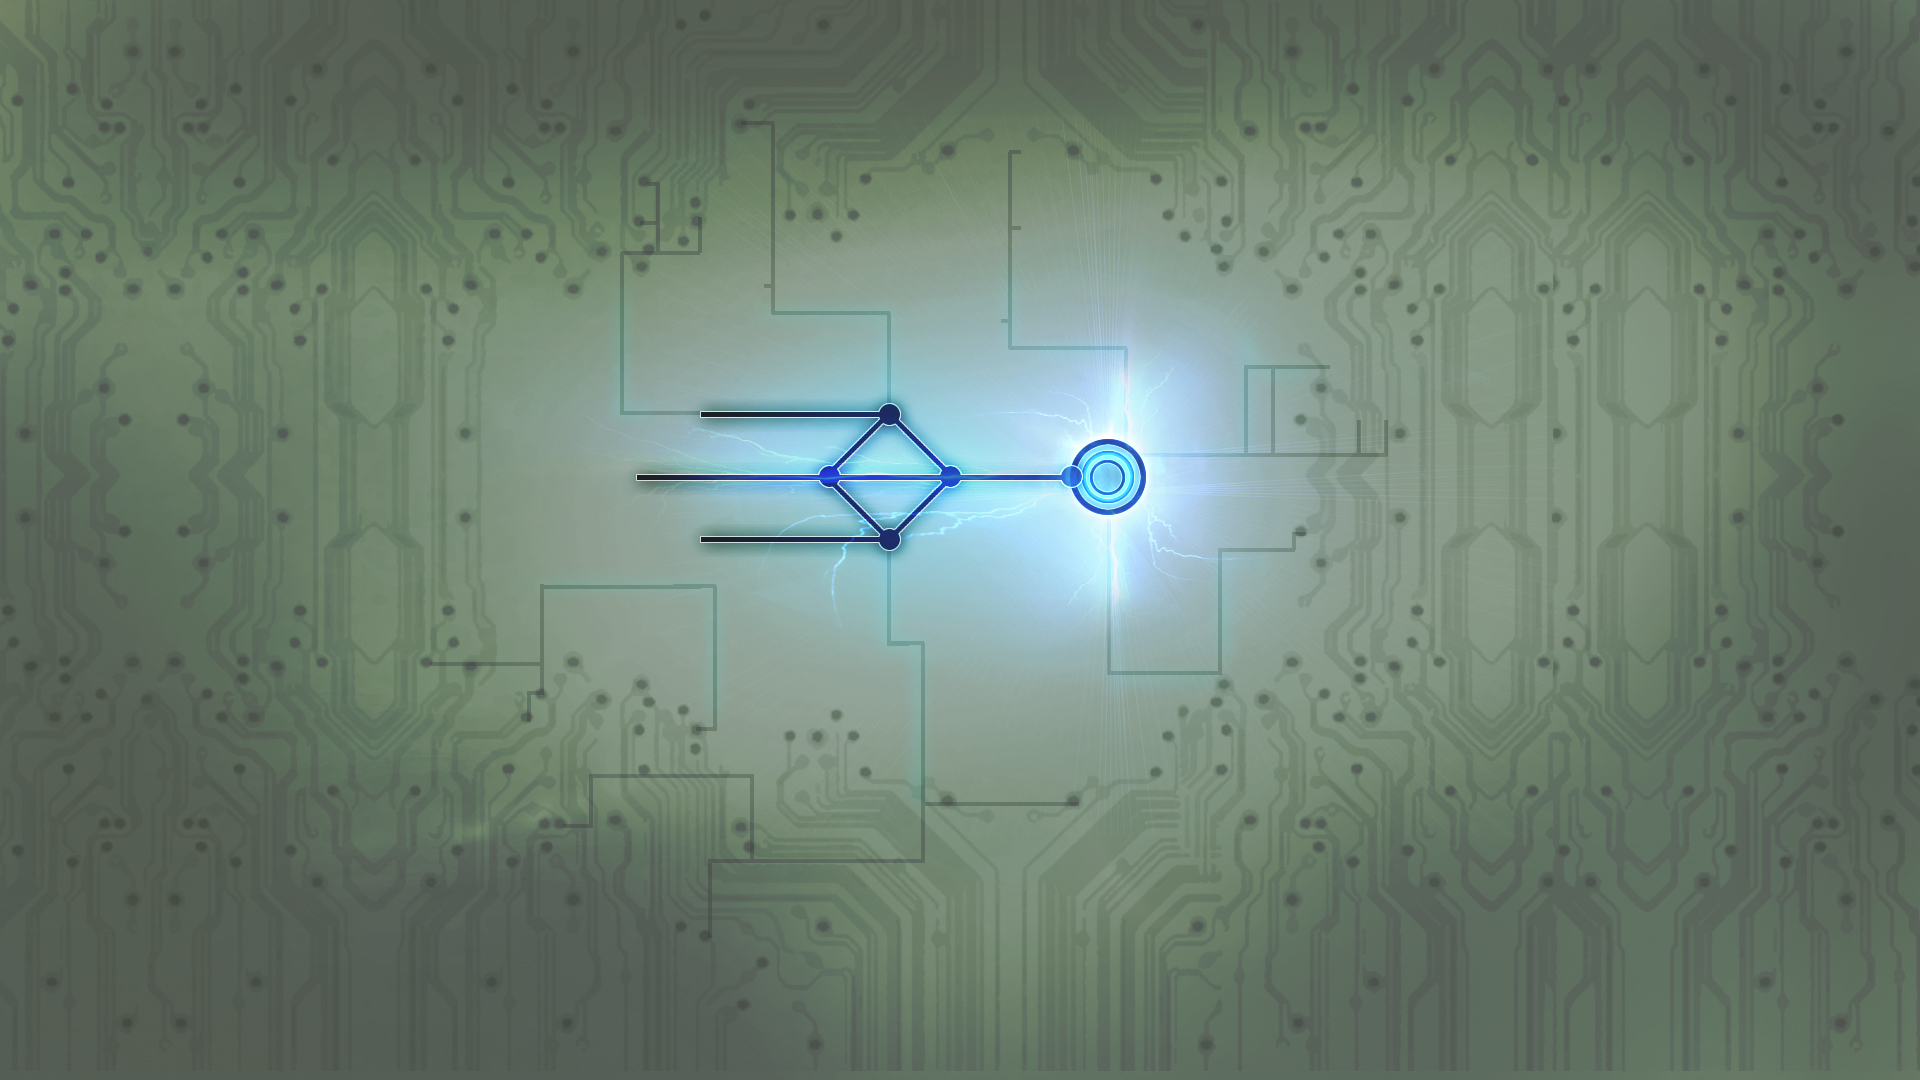 Steam Card Exchange Showcase Circuits Other Gt Keypad Combination Lock Circuit 3 Of 5artwork Through The Code